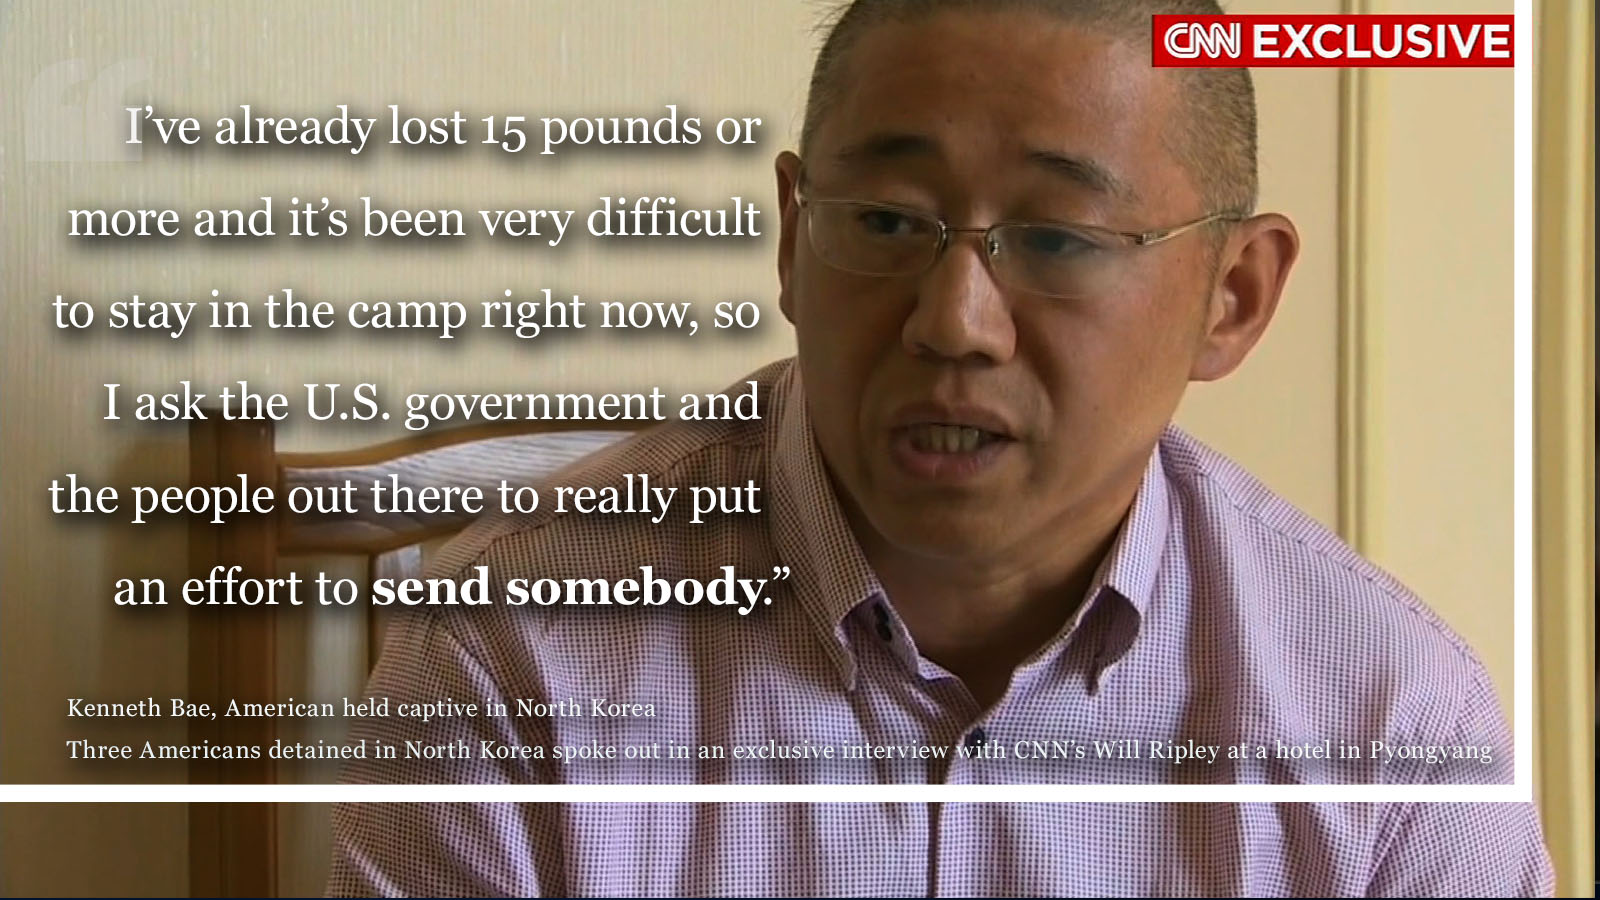 Americans Detained in North Korea Speak Out to CNN